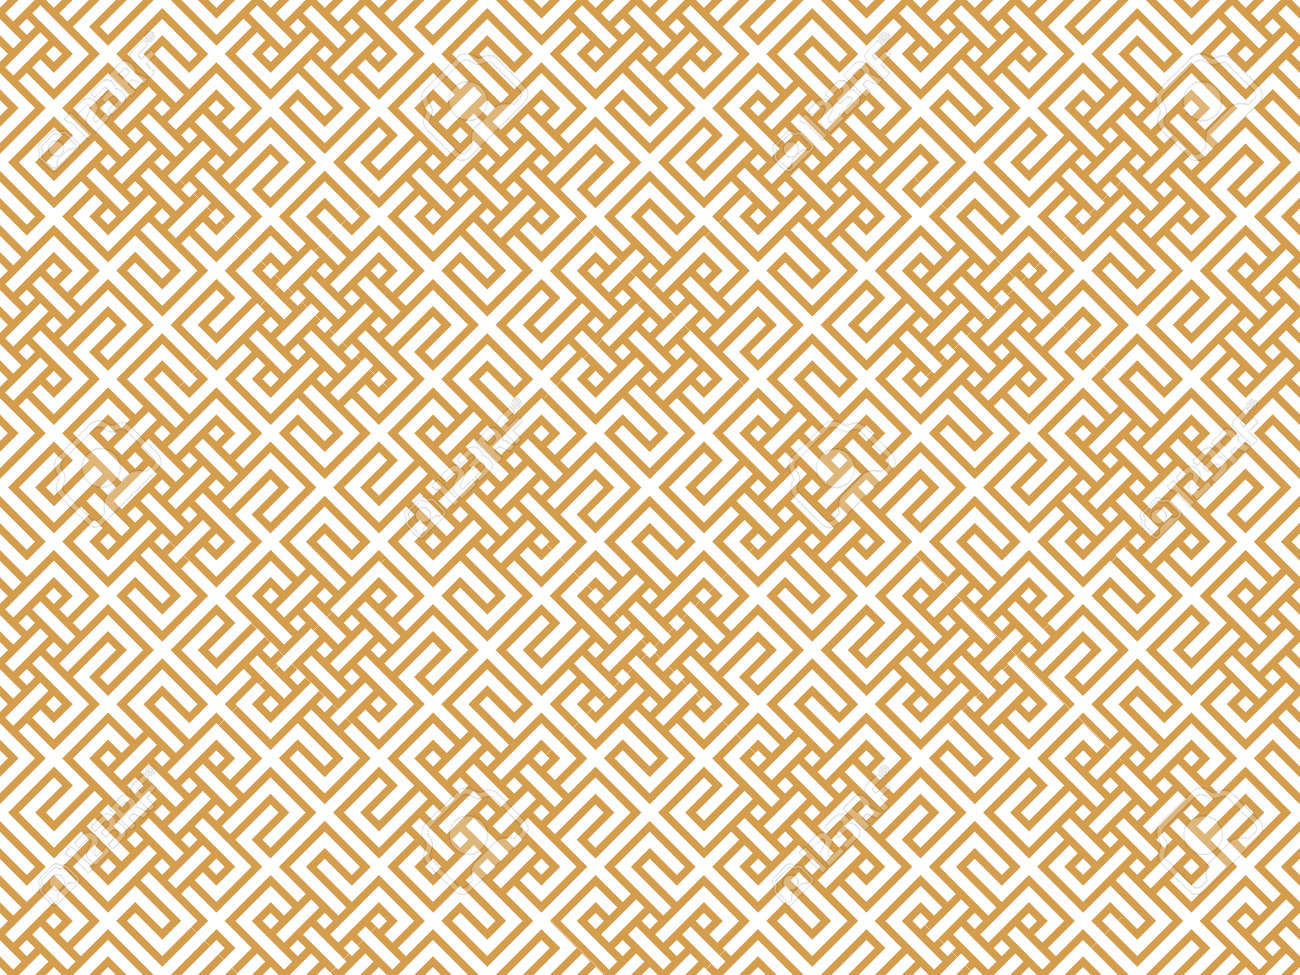 The geometric pattern with lines. Seamless vector background. White and gold texture. Graphic modern pattern. Simple lattice graphic design - 169878892